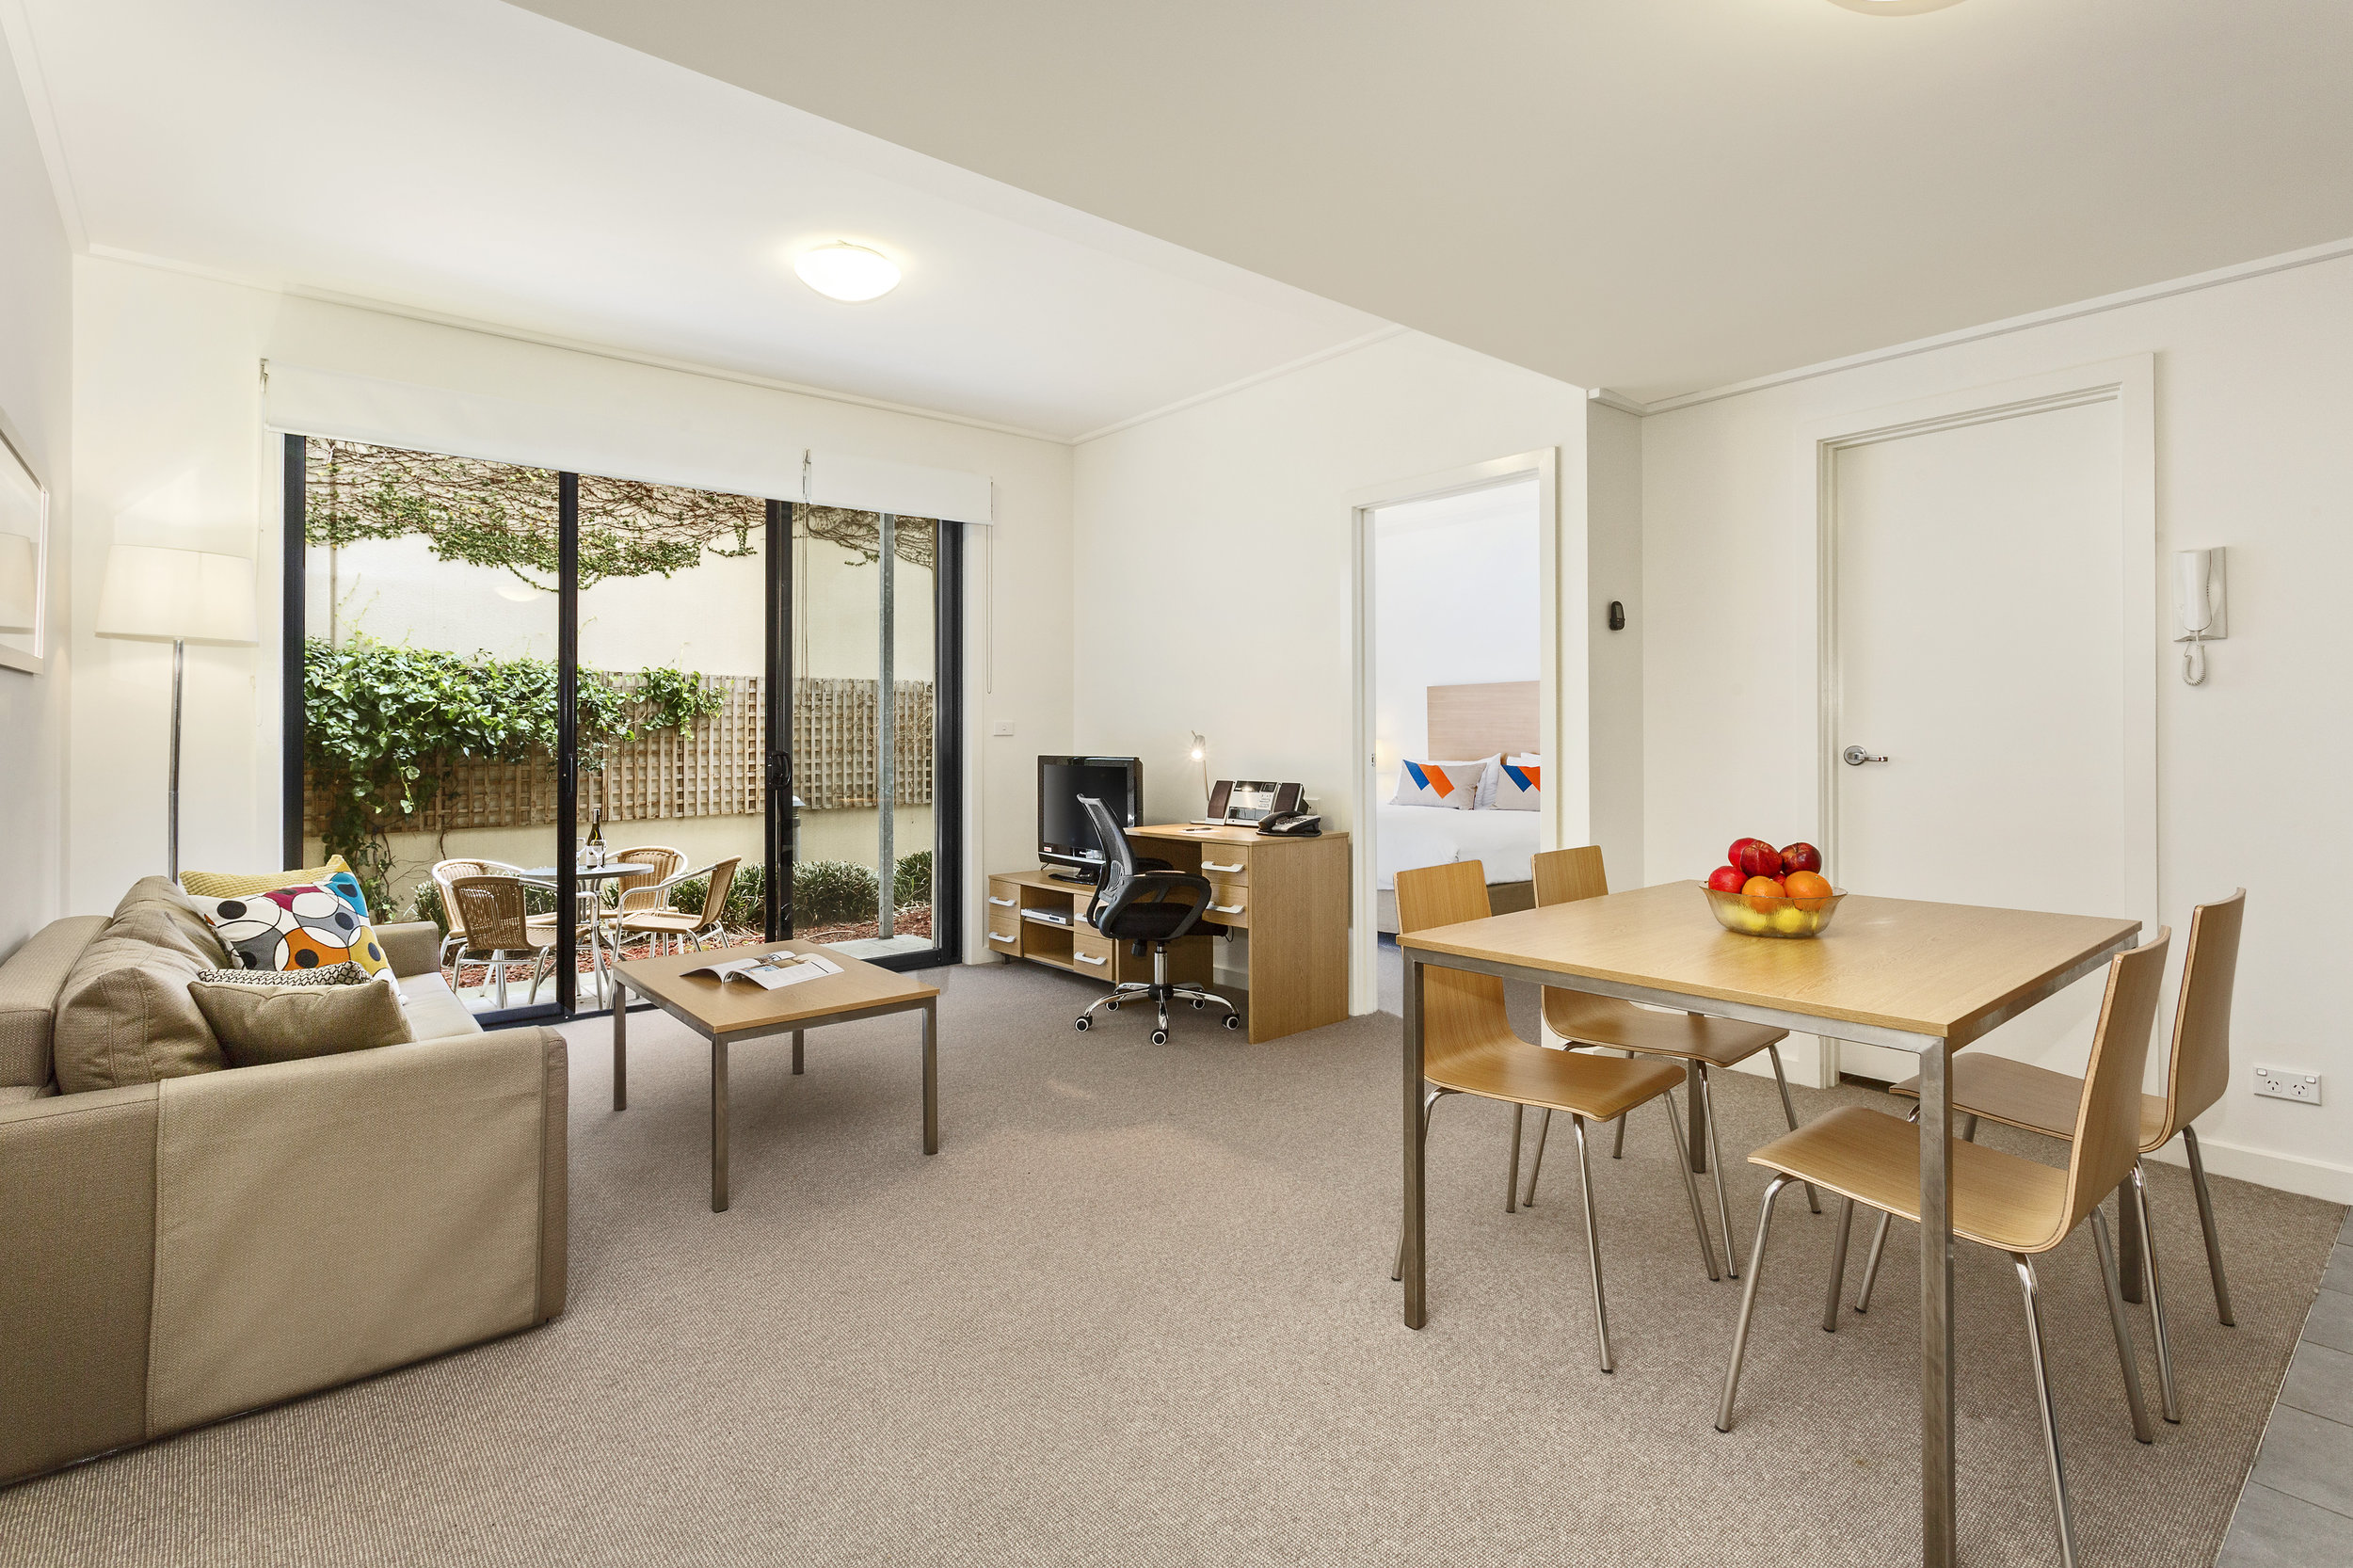 Quest Serviced Apartments - New Photo1.jpg